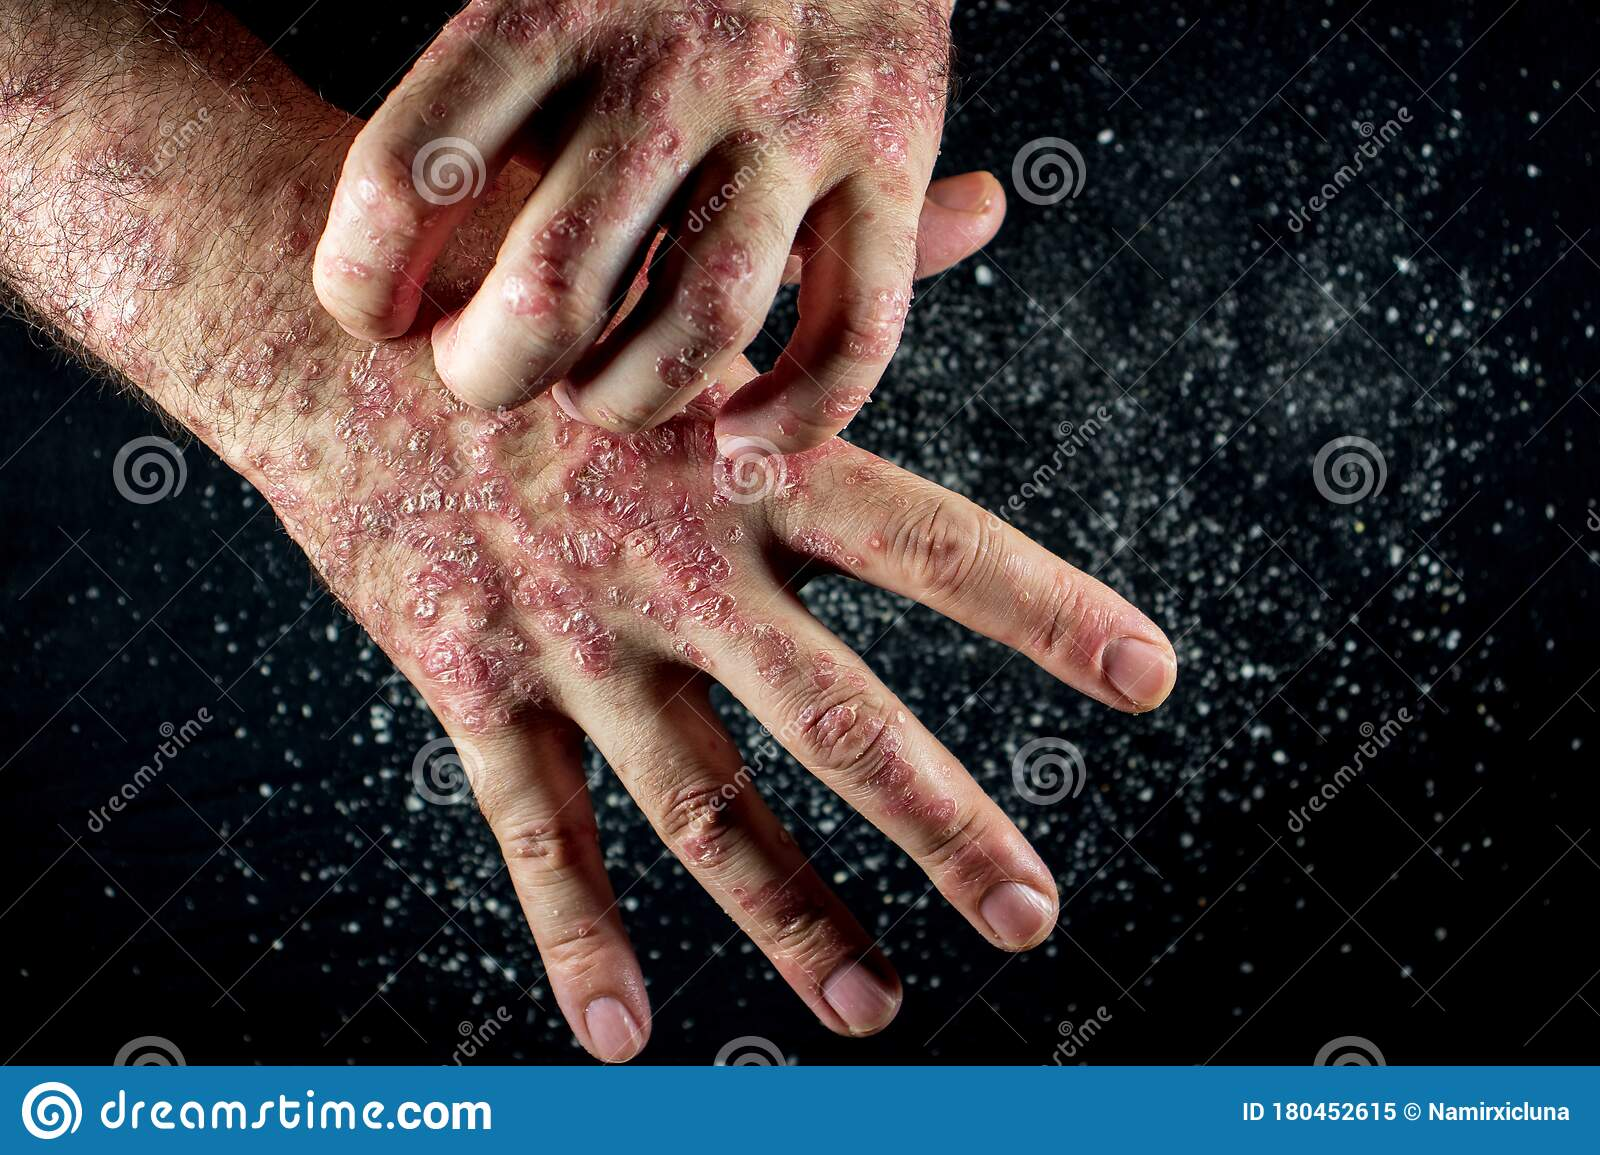 psoriasis scales picture